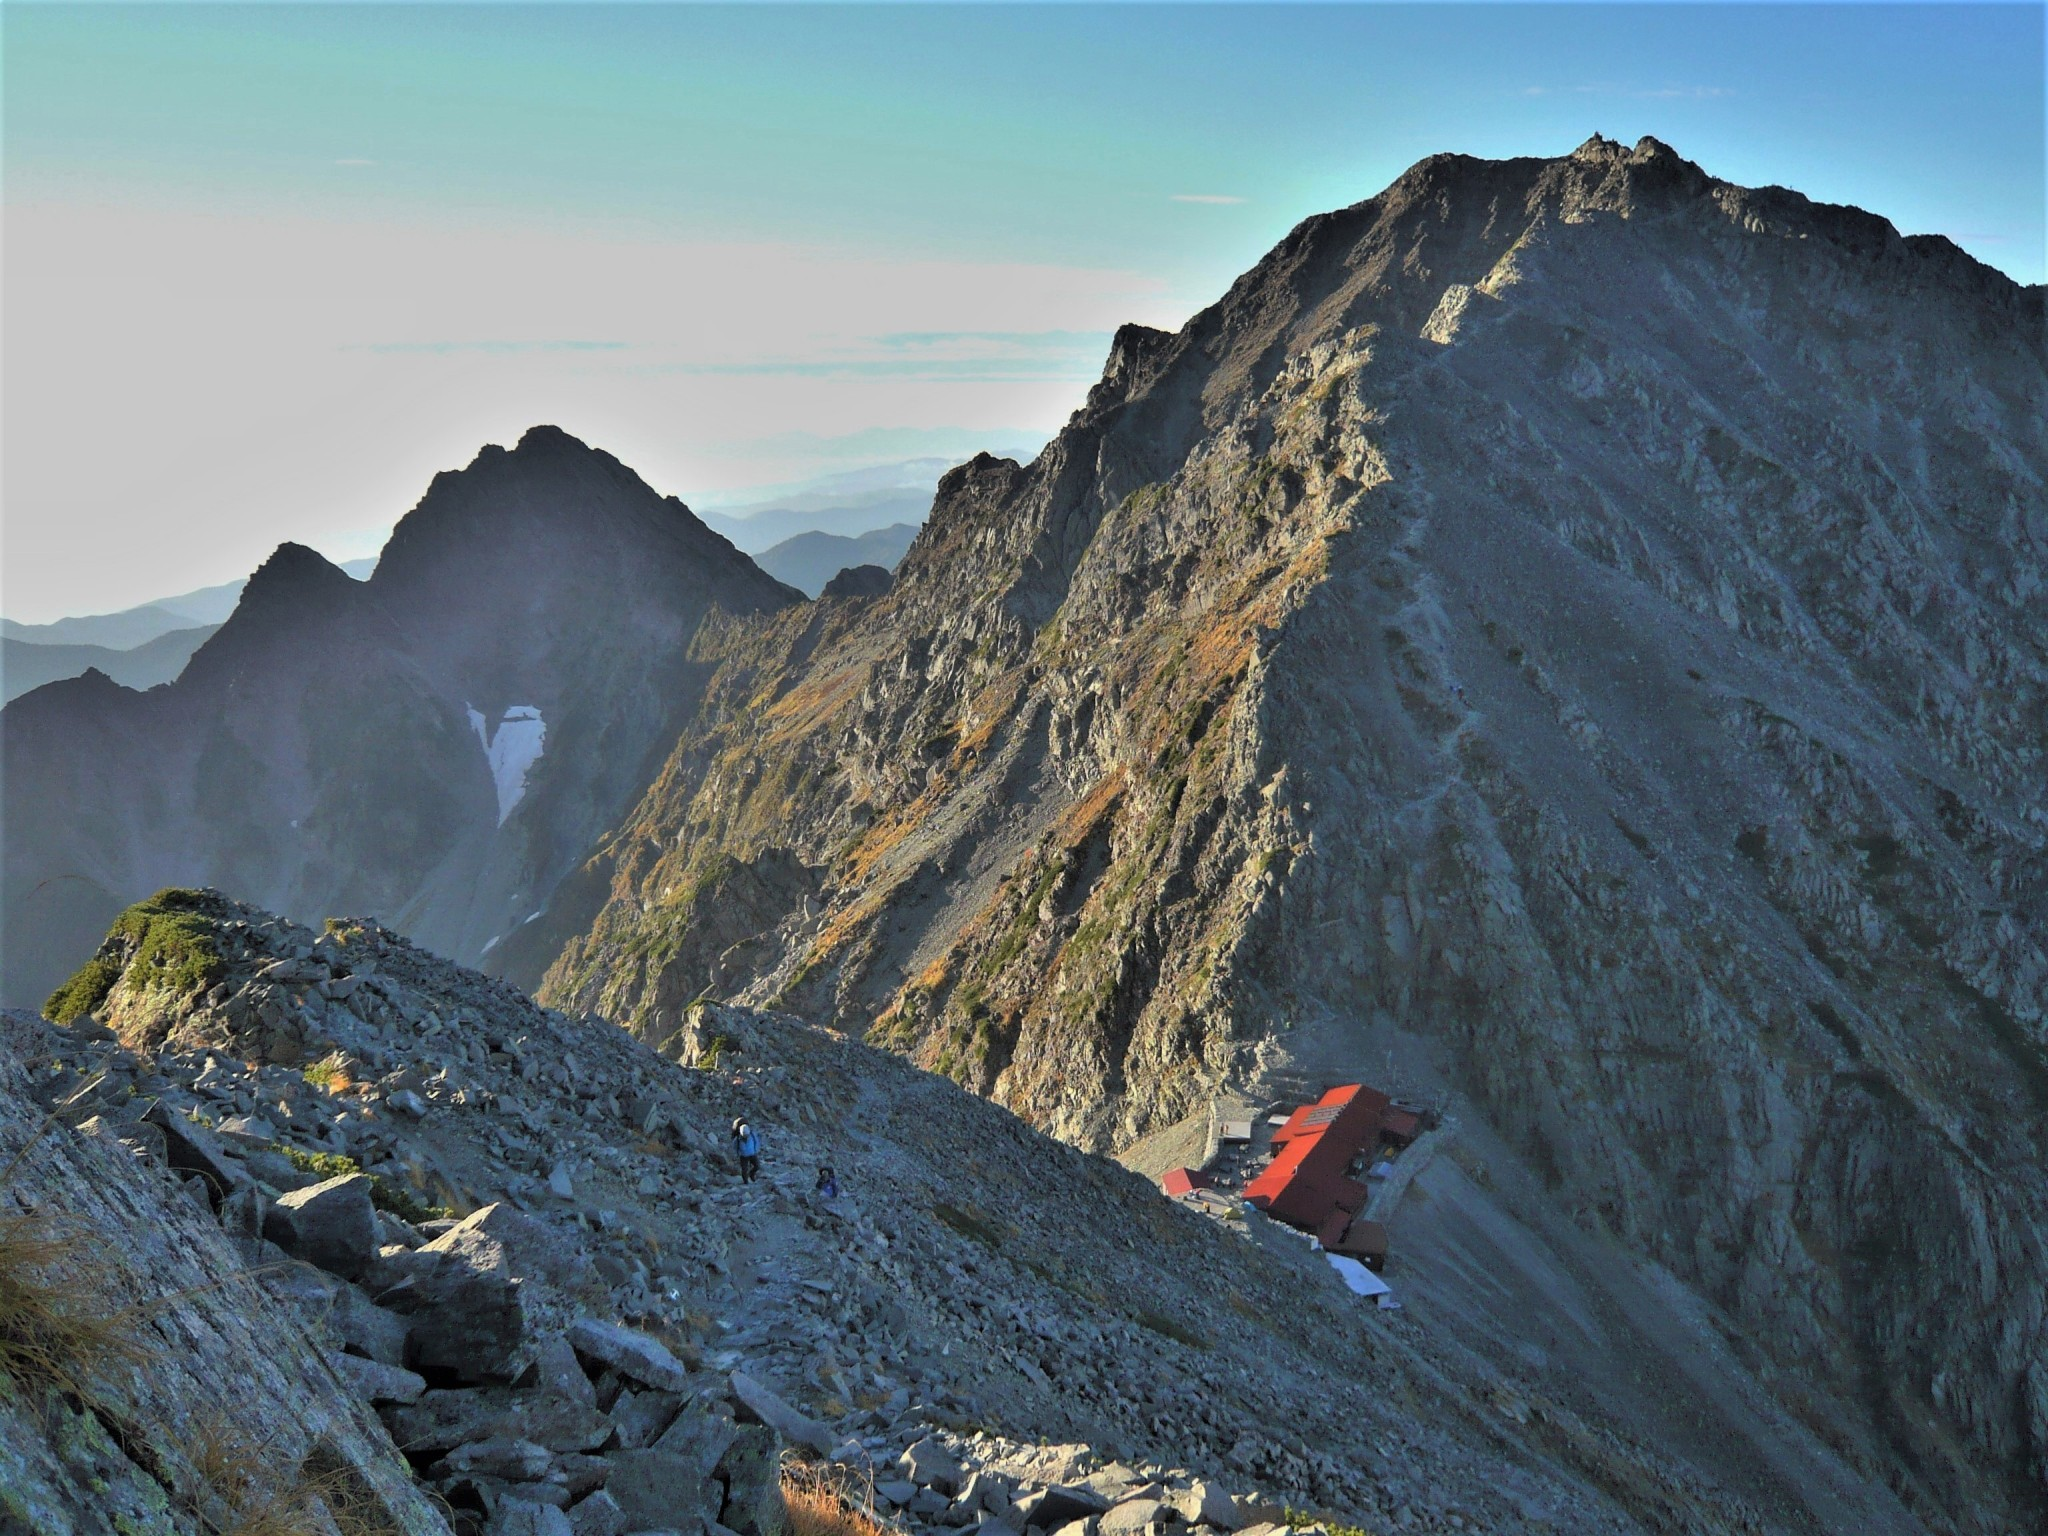 A small mountain lodge perched precariously on a dramatic mountain ridgeline between Mount Oku Hotaka and Mount Karasawa in the Japan Alps.